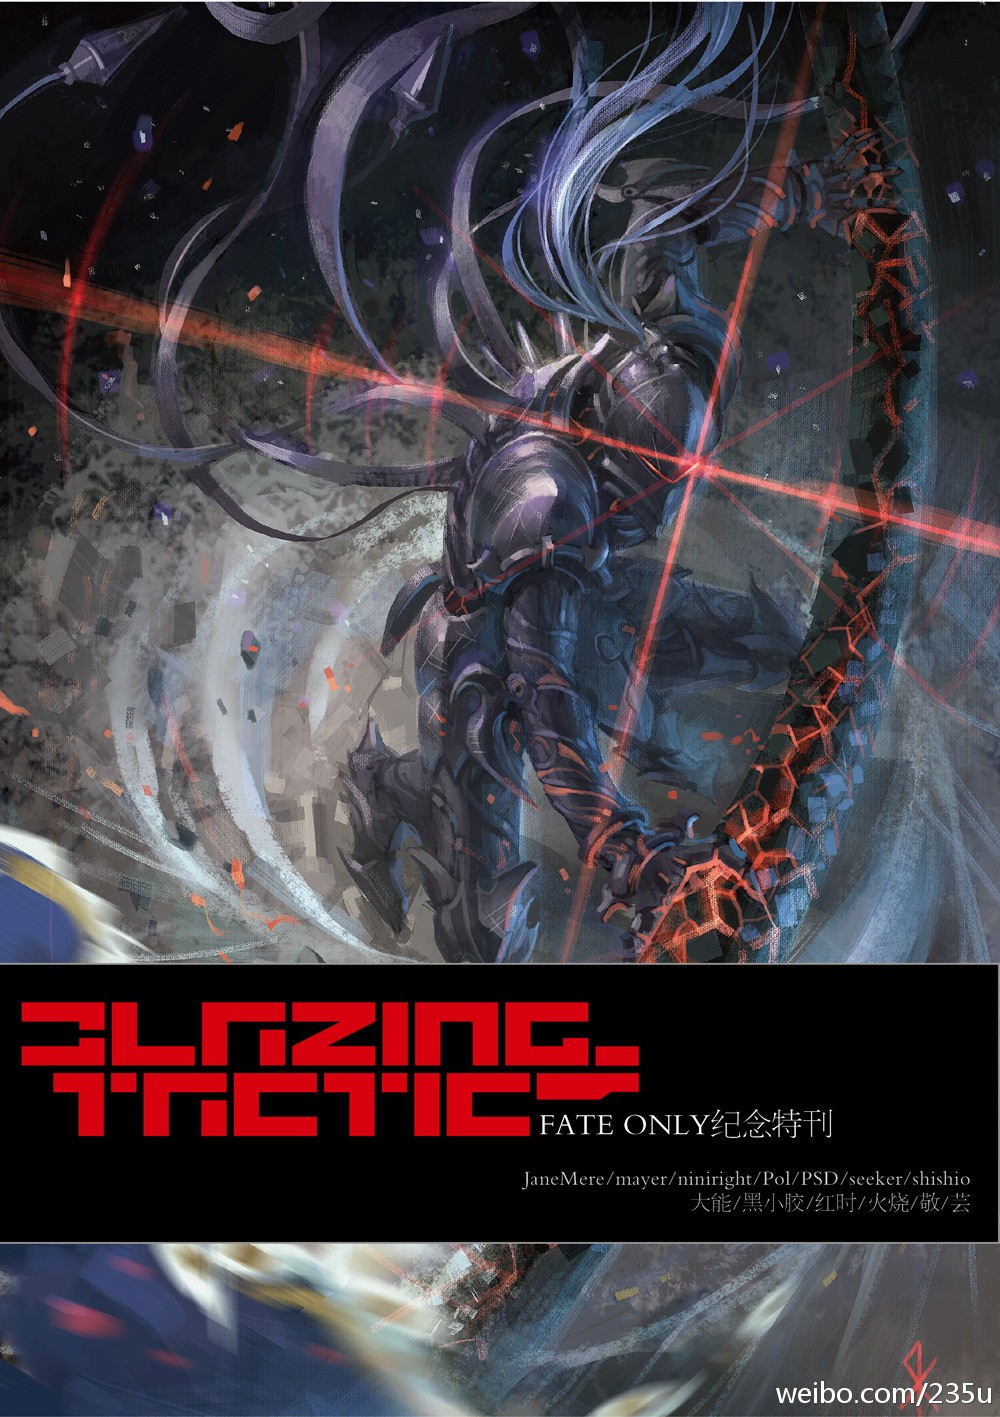 FATE ONLY记念刊《Blazing Tactic》